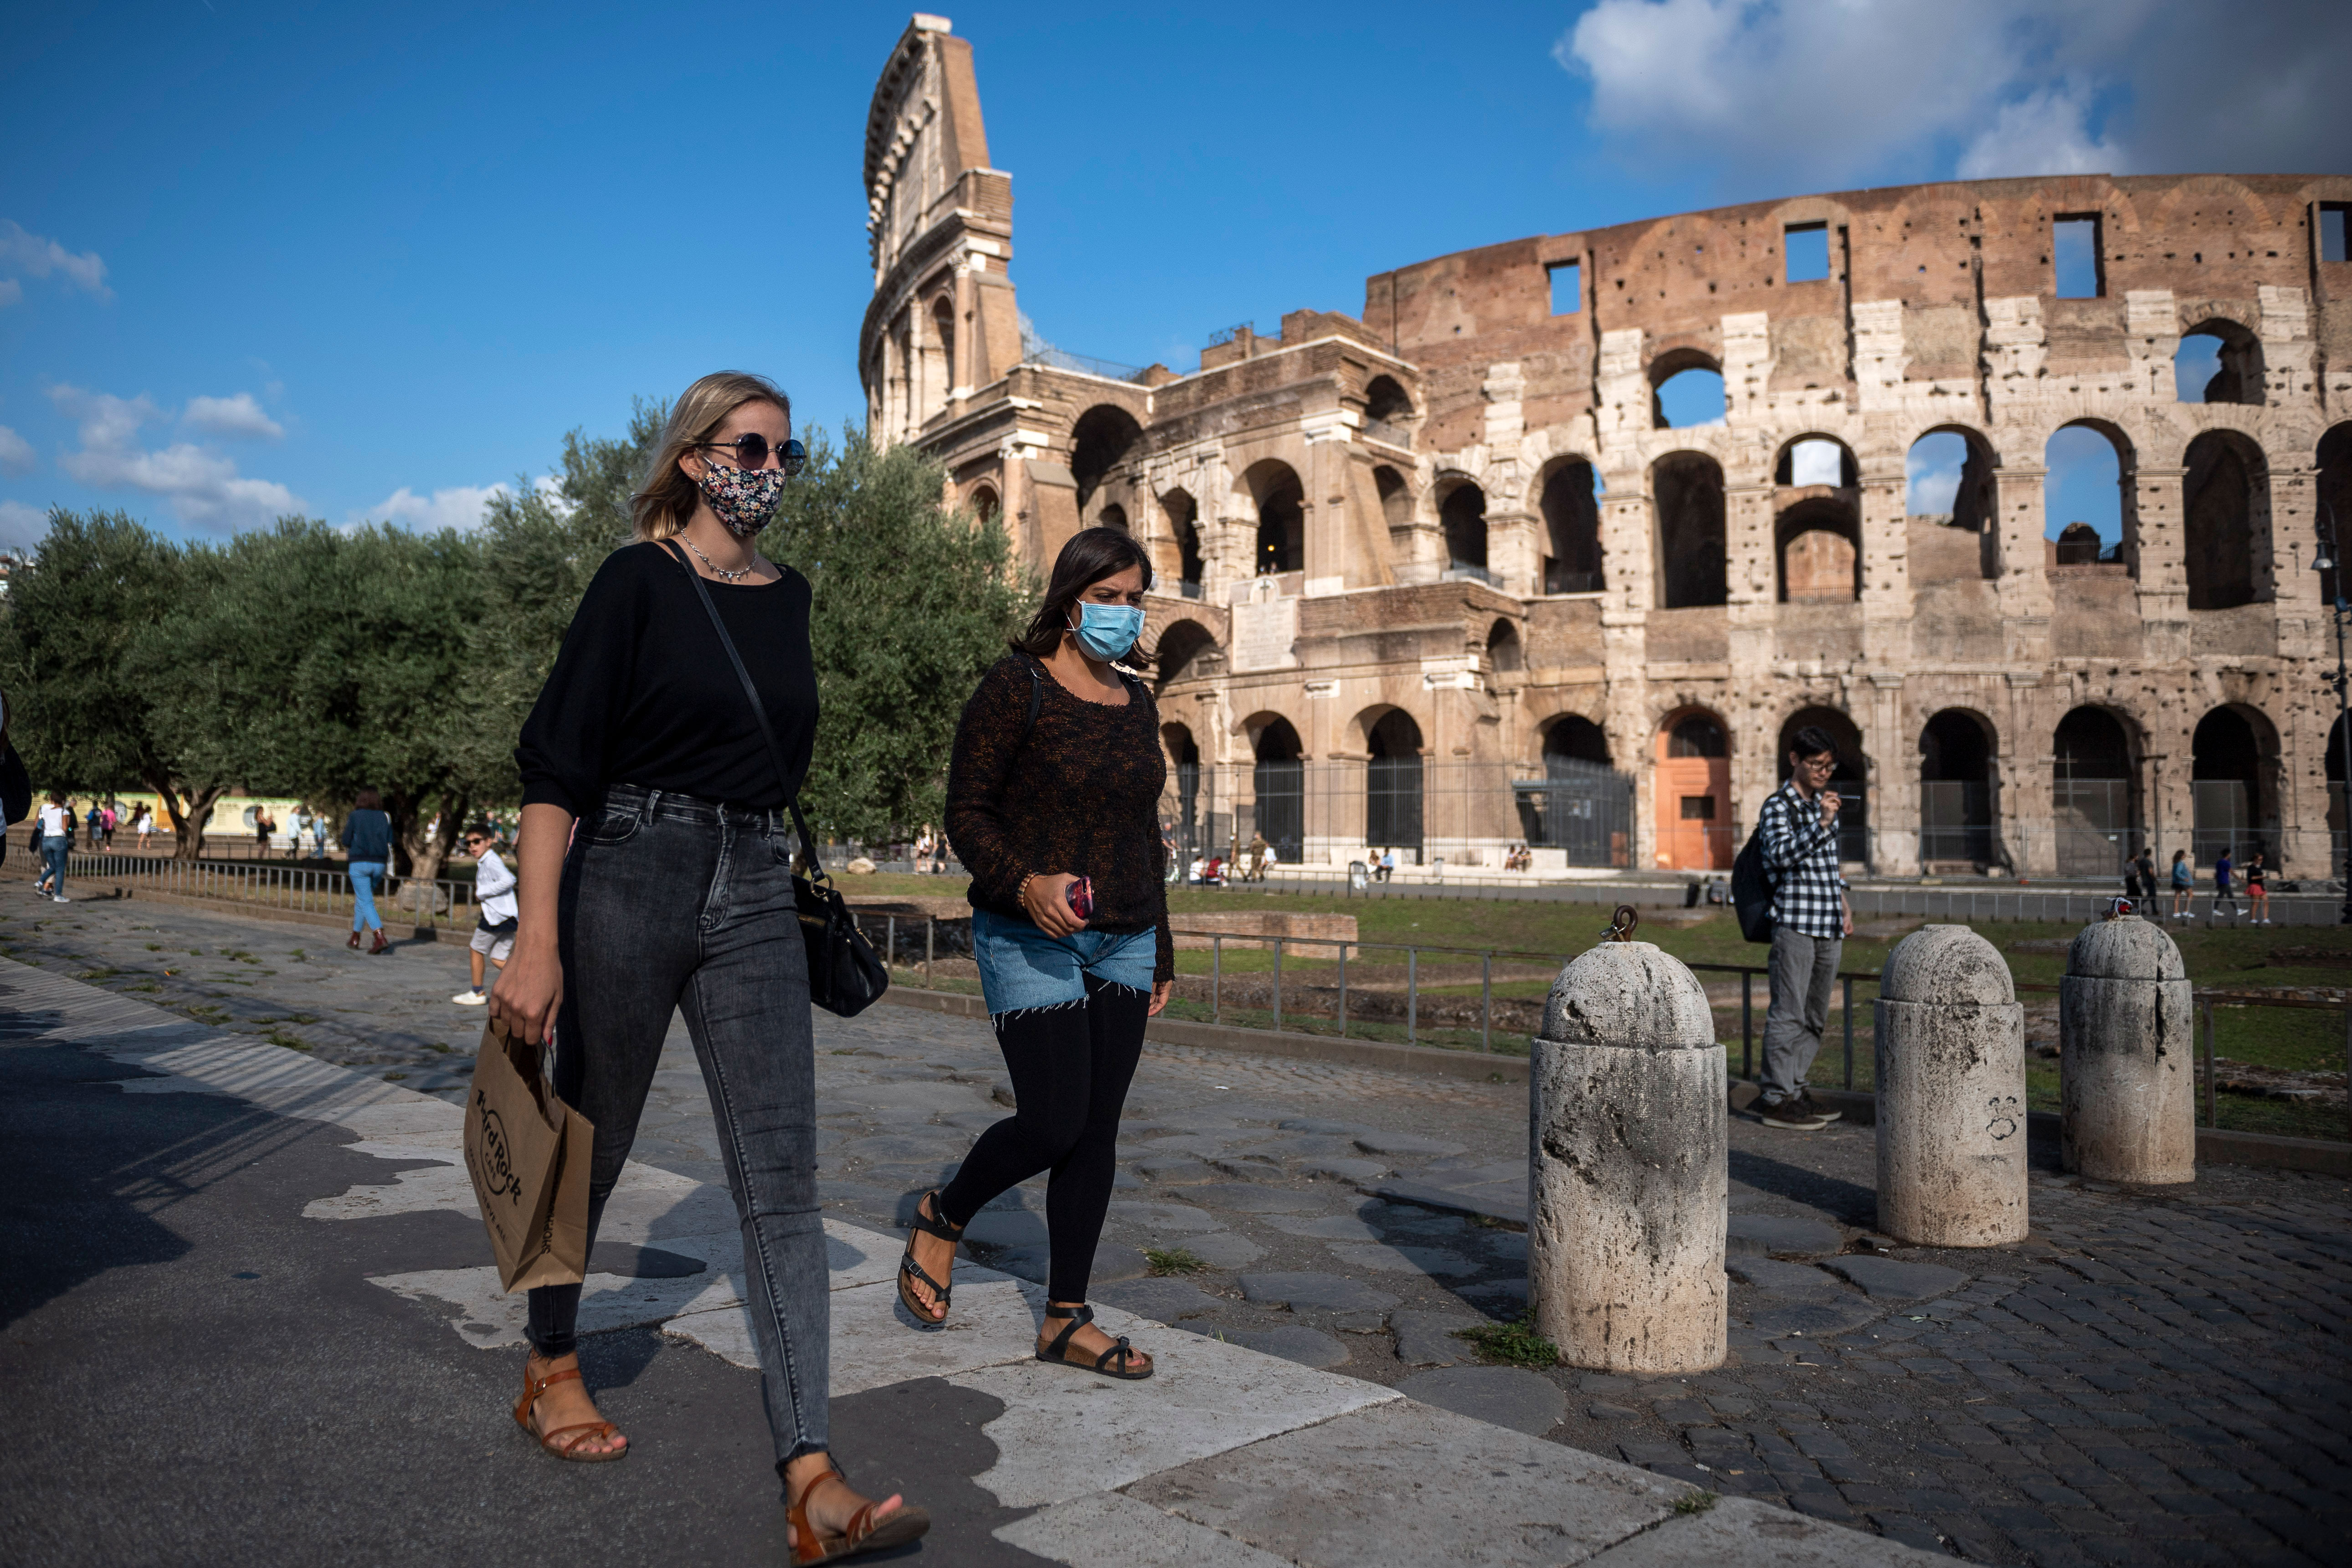 People walk by the Colosseum in Rome on October 1.